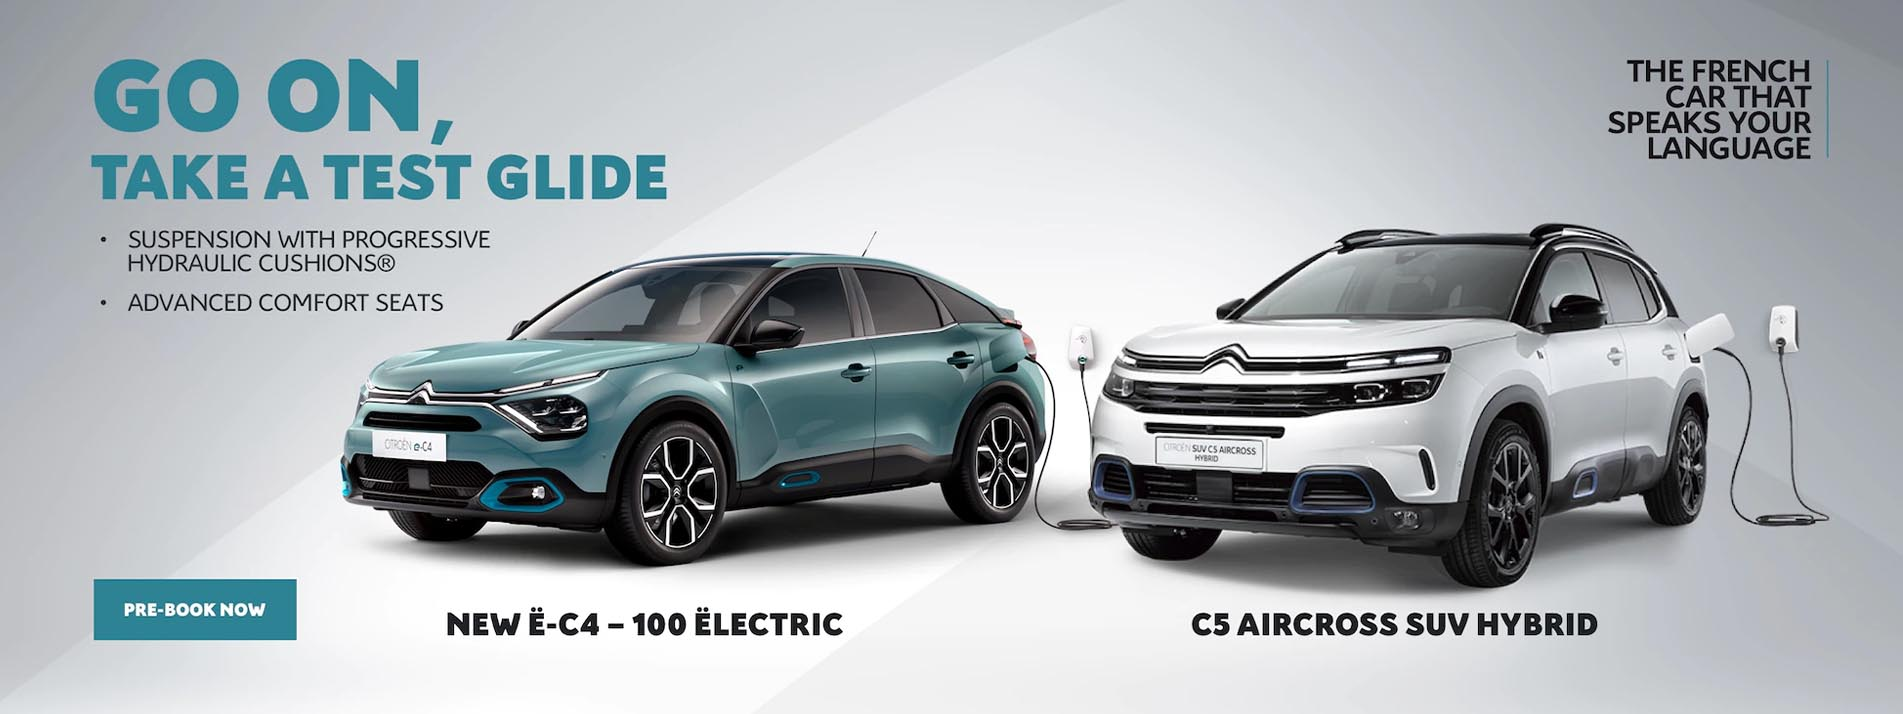 go-on-take-a-glide-in-citroen-hybrid-and-new-c4-electric-m-sli